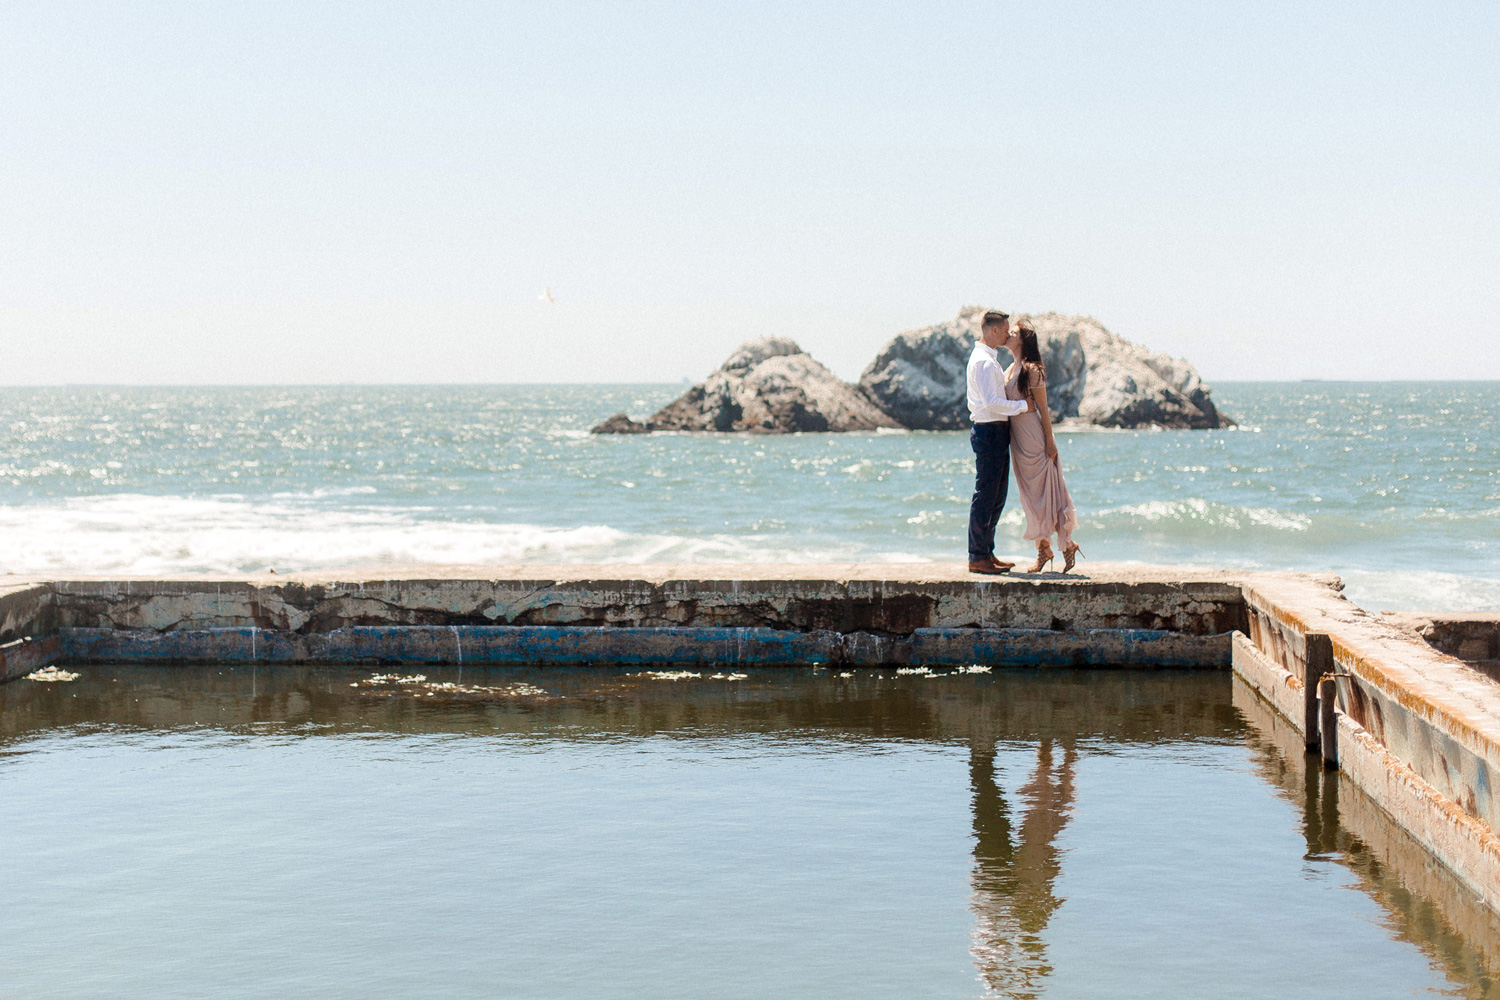 baker-beach-san-francisco-california-engagement-session-carography-stuidos-I58A9787.jpg